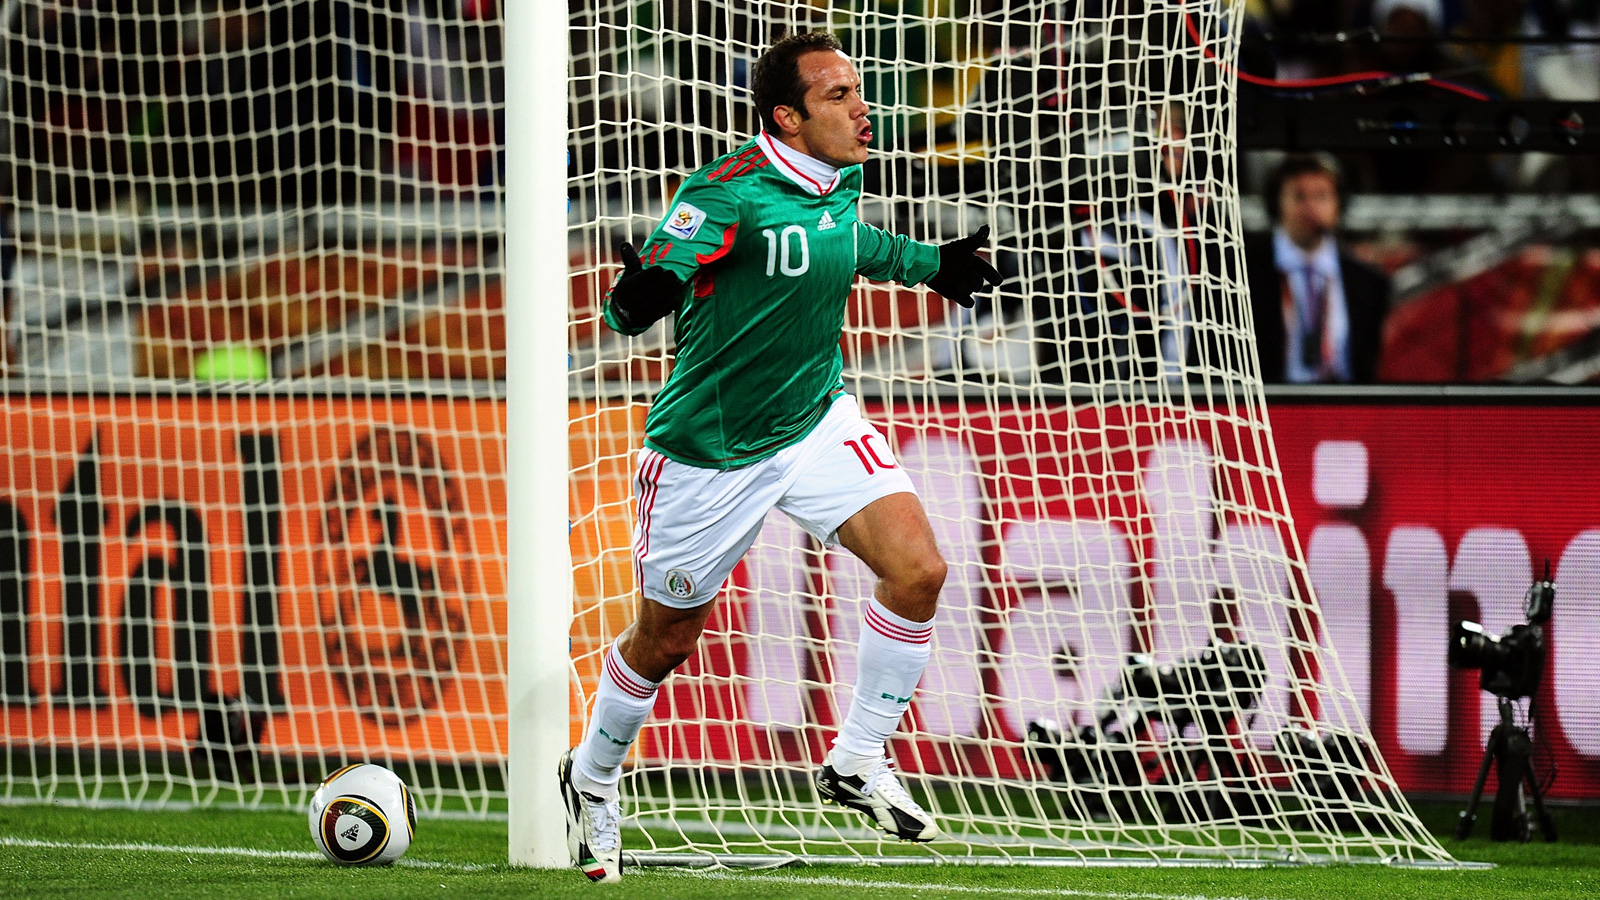 Blanco celebrates his penalty kick against France in a 2-0 group-stage win at the 2010 FIFA World Cup in South Africa.